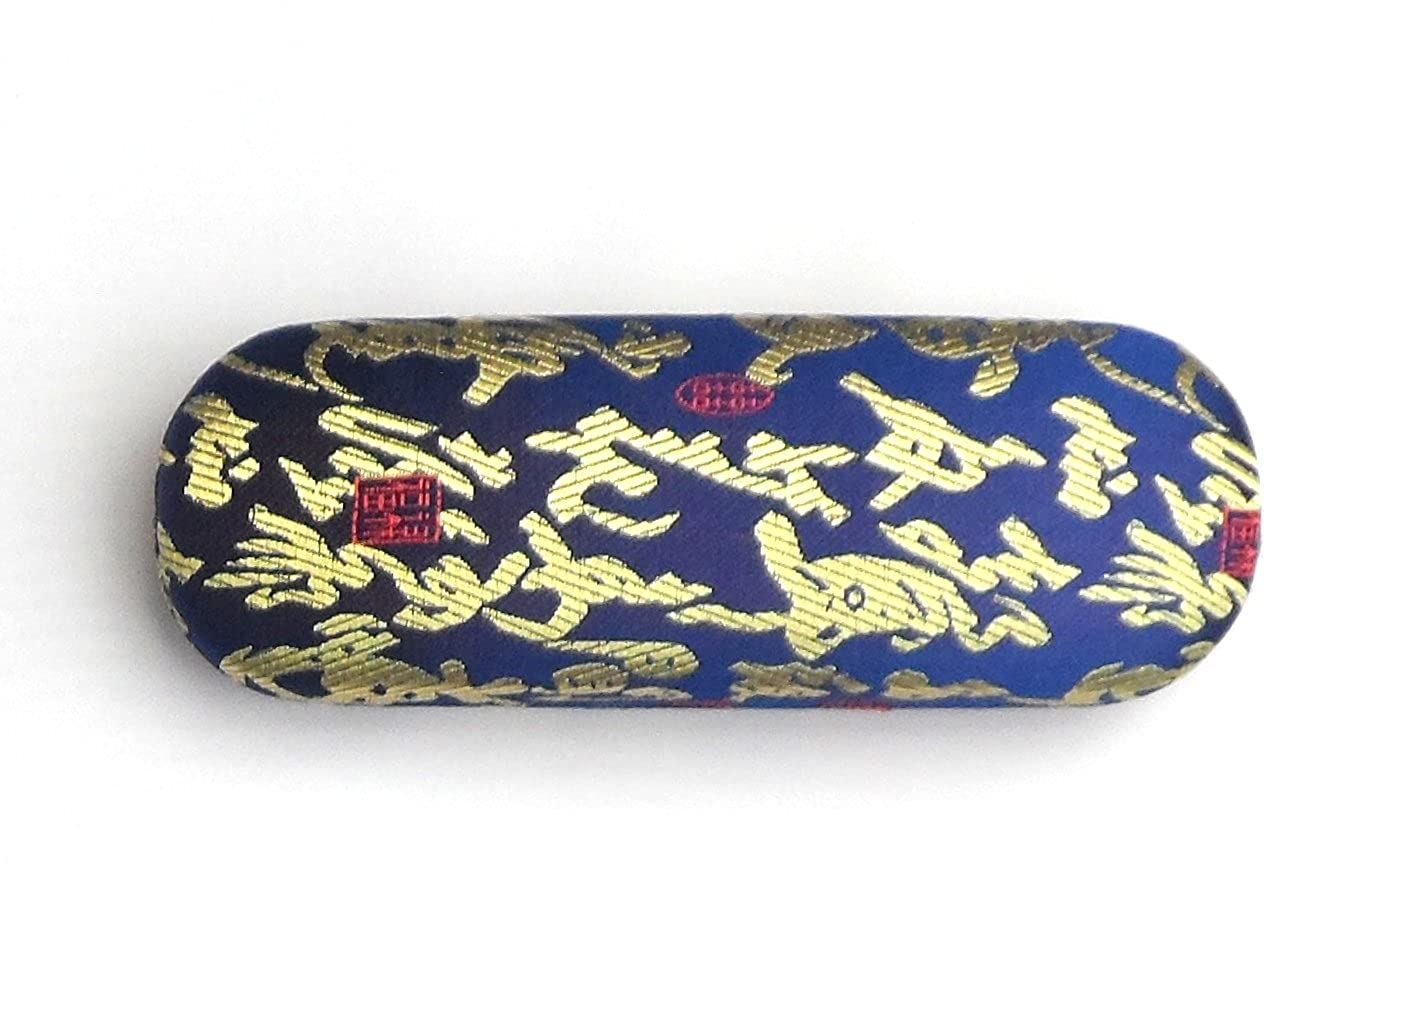 4d76df4b5e Homestreet Glasses Spectacle Case in Silk Brocade (3NAVY)  Amazon.co.uk   Shoes   Bags